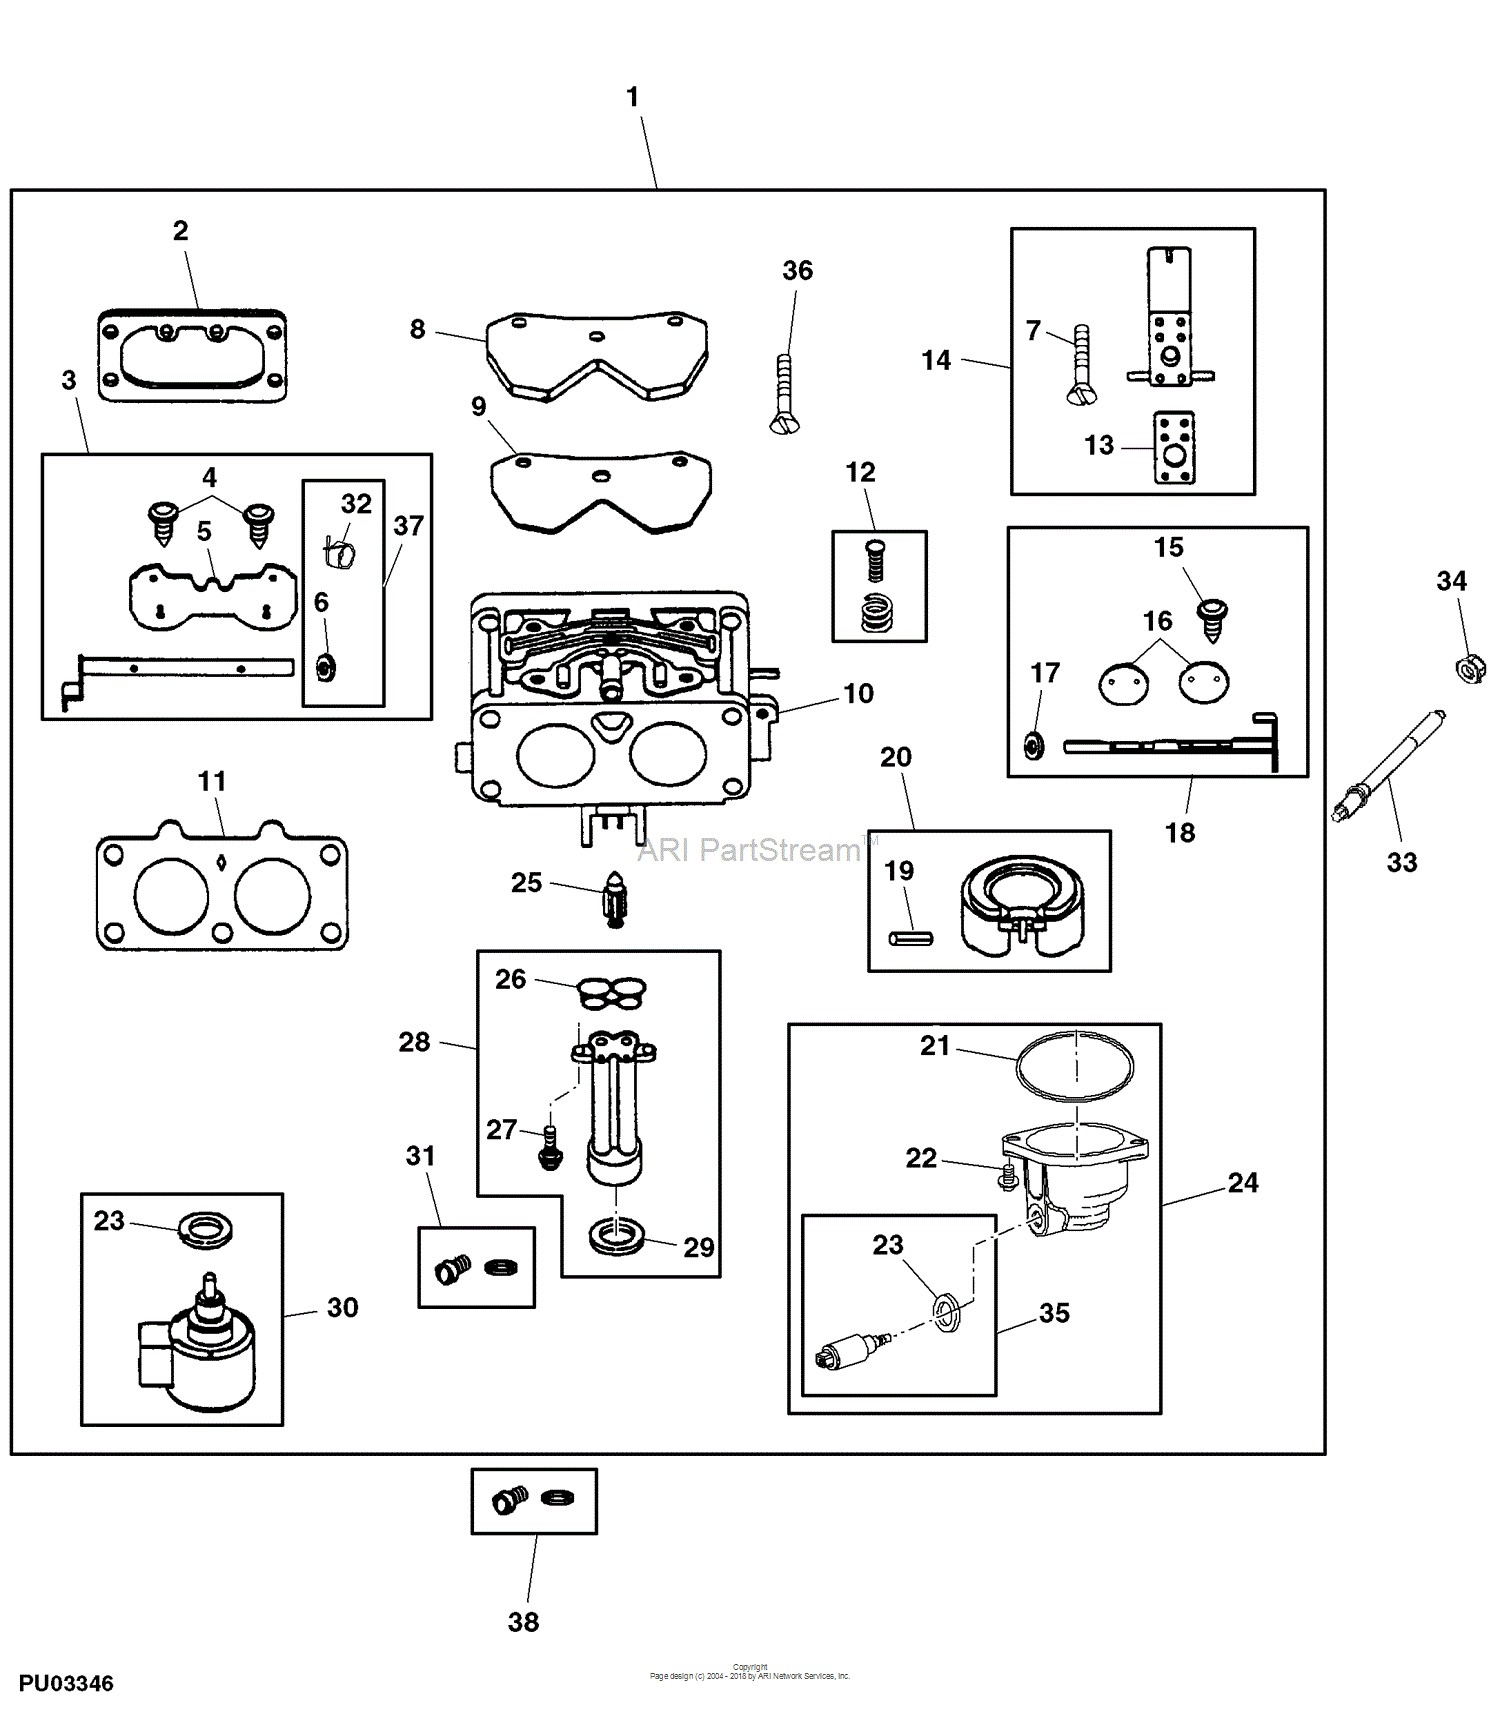 case ih parts diagram john deere parts diagrams john deere